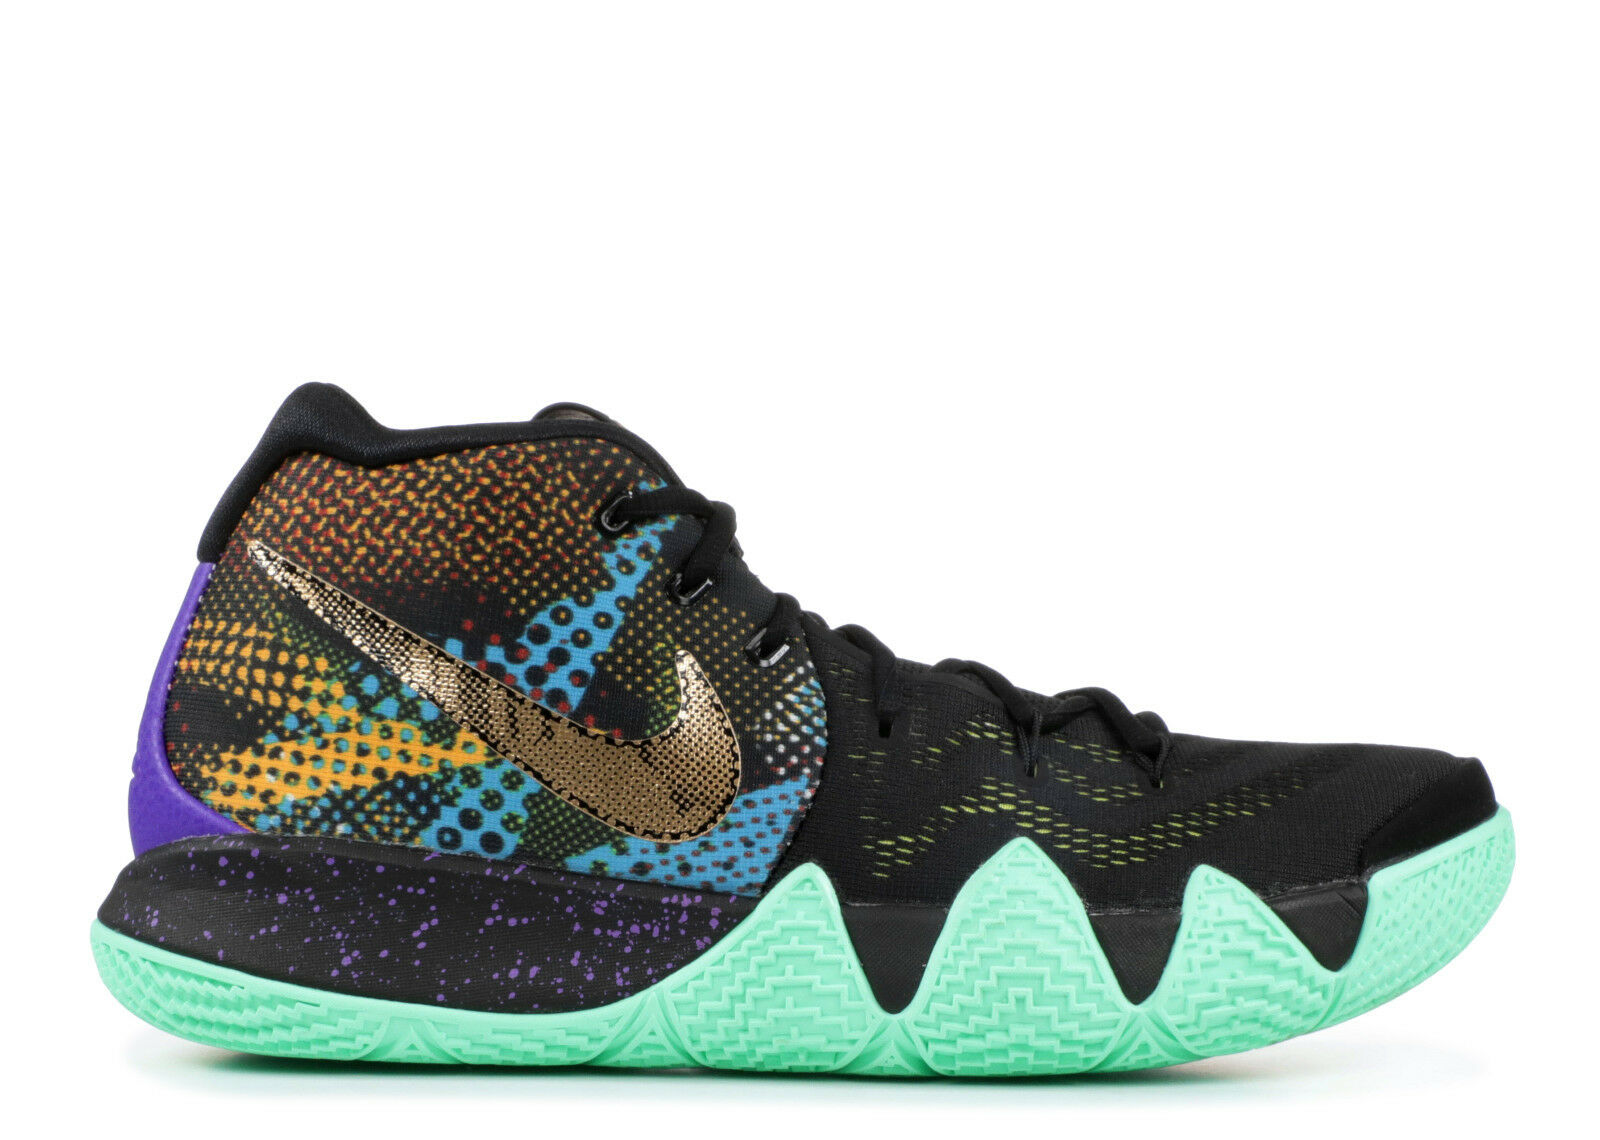 pretty nice 4dc31 e1655 ... usa nike kyrie 4 mamba noir vert hommes hommes the hommes talité 11  chaussures hommes hommes